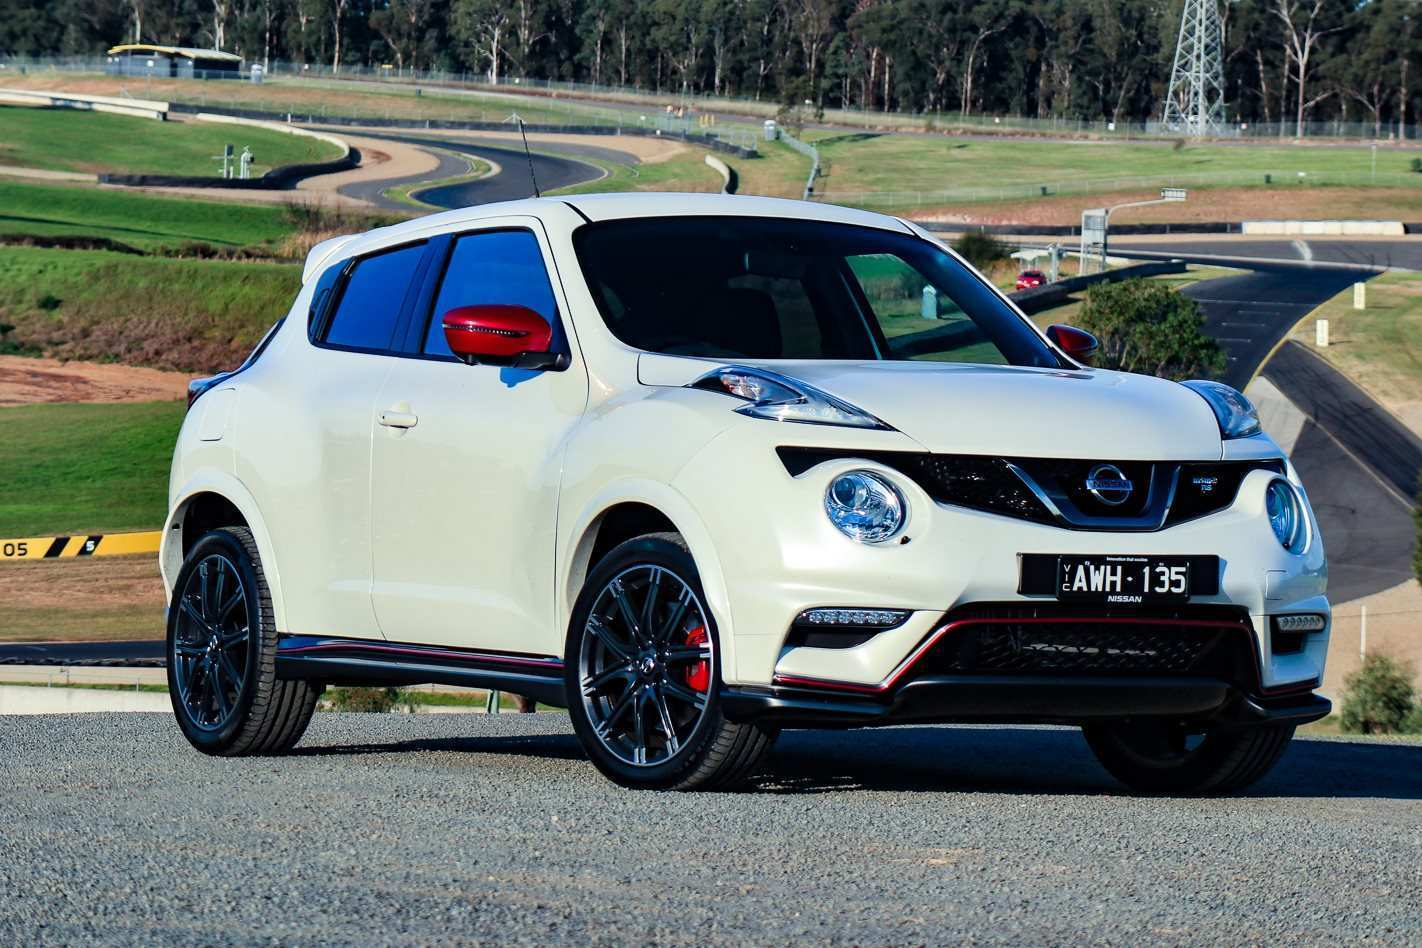 43 A 2019 Nissan Juke Review Model